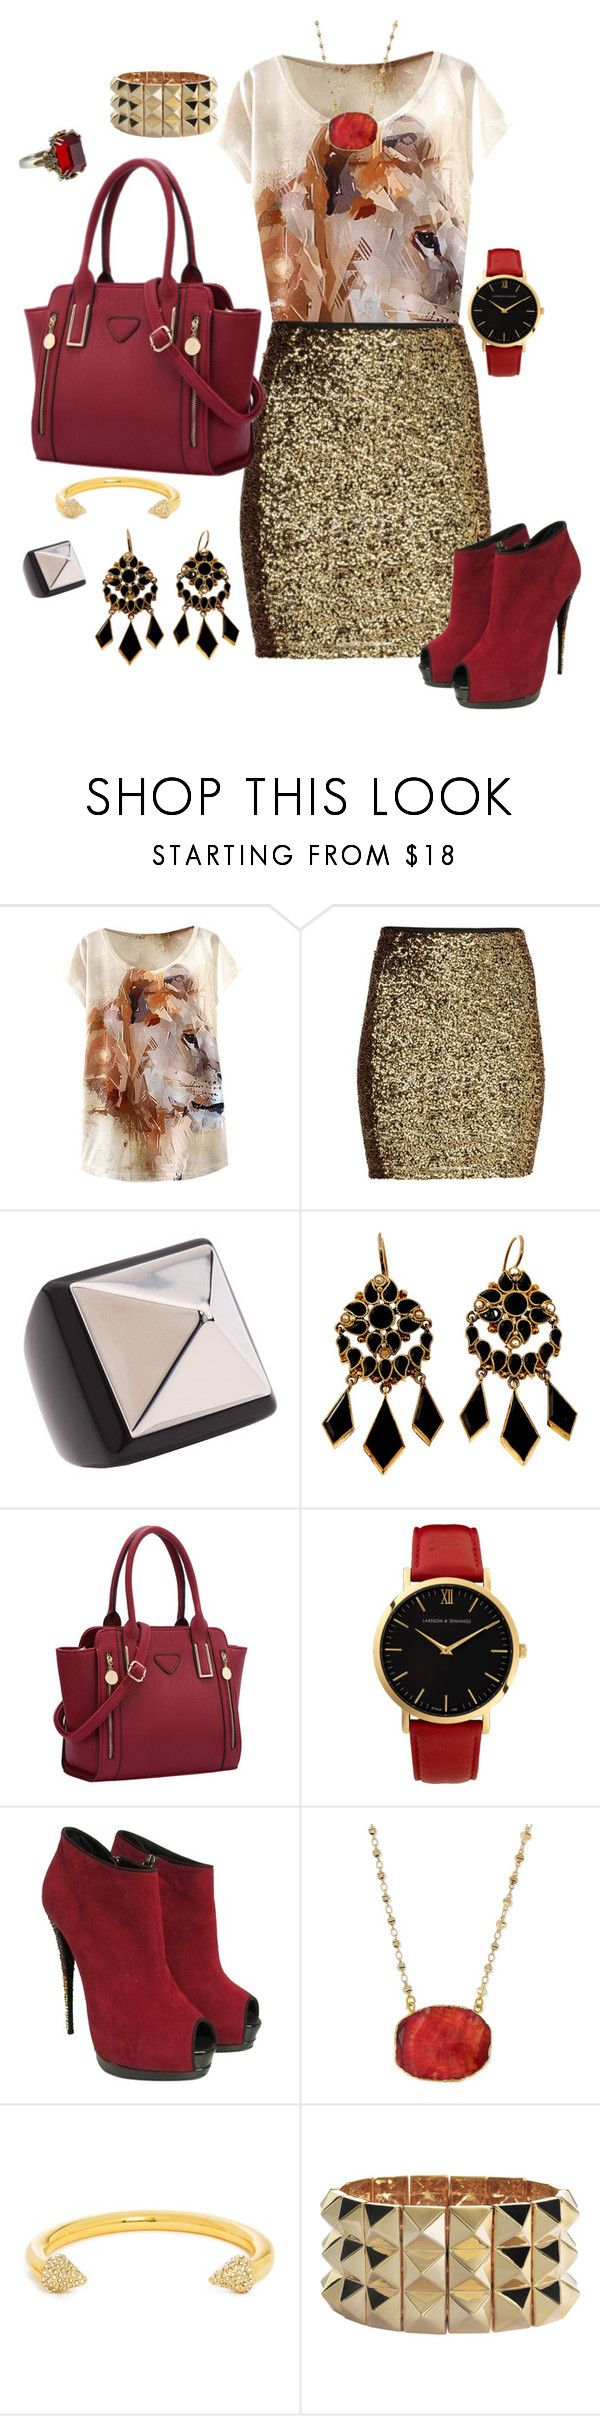 """""""Red & Gold & Black"""" by bebe6121985 on Polyvore featuring moda, Marc by Marc Jacobs, Larsson & Jennings, Giuseppe Zanotti, Panacea, BaubleBar, Noir Jewelry i Alexander McQueen"""